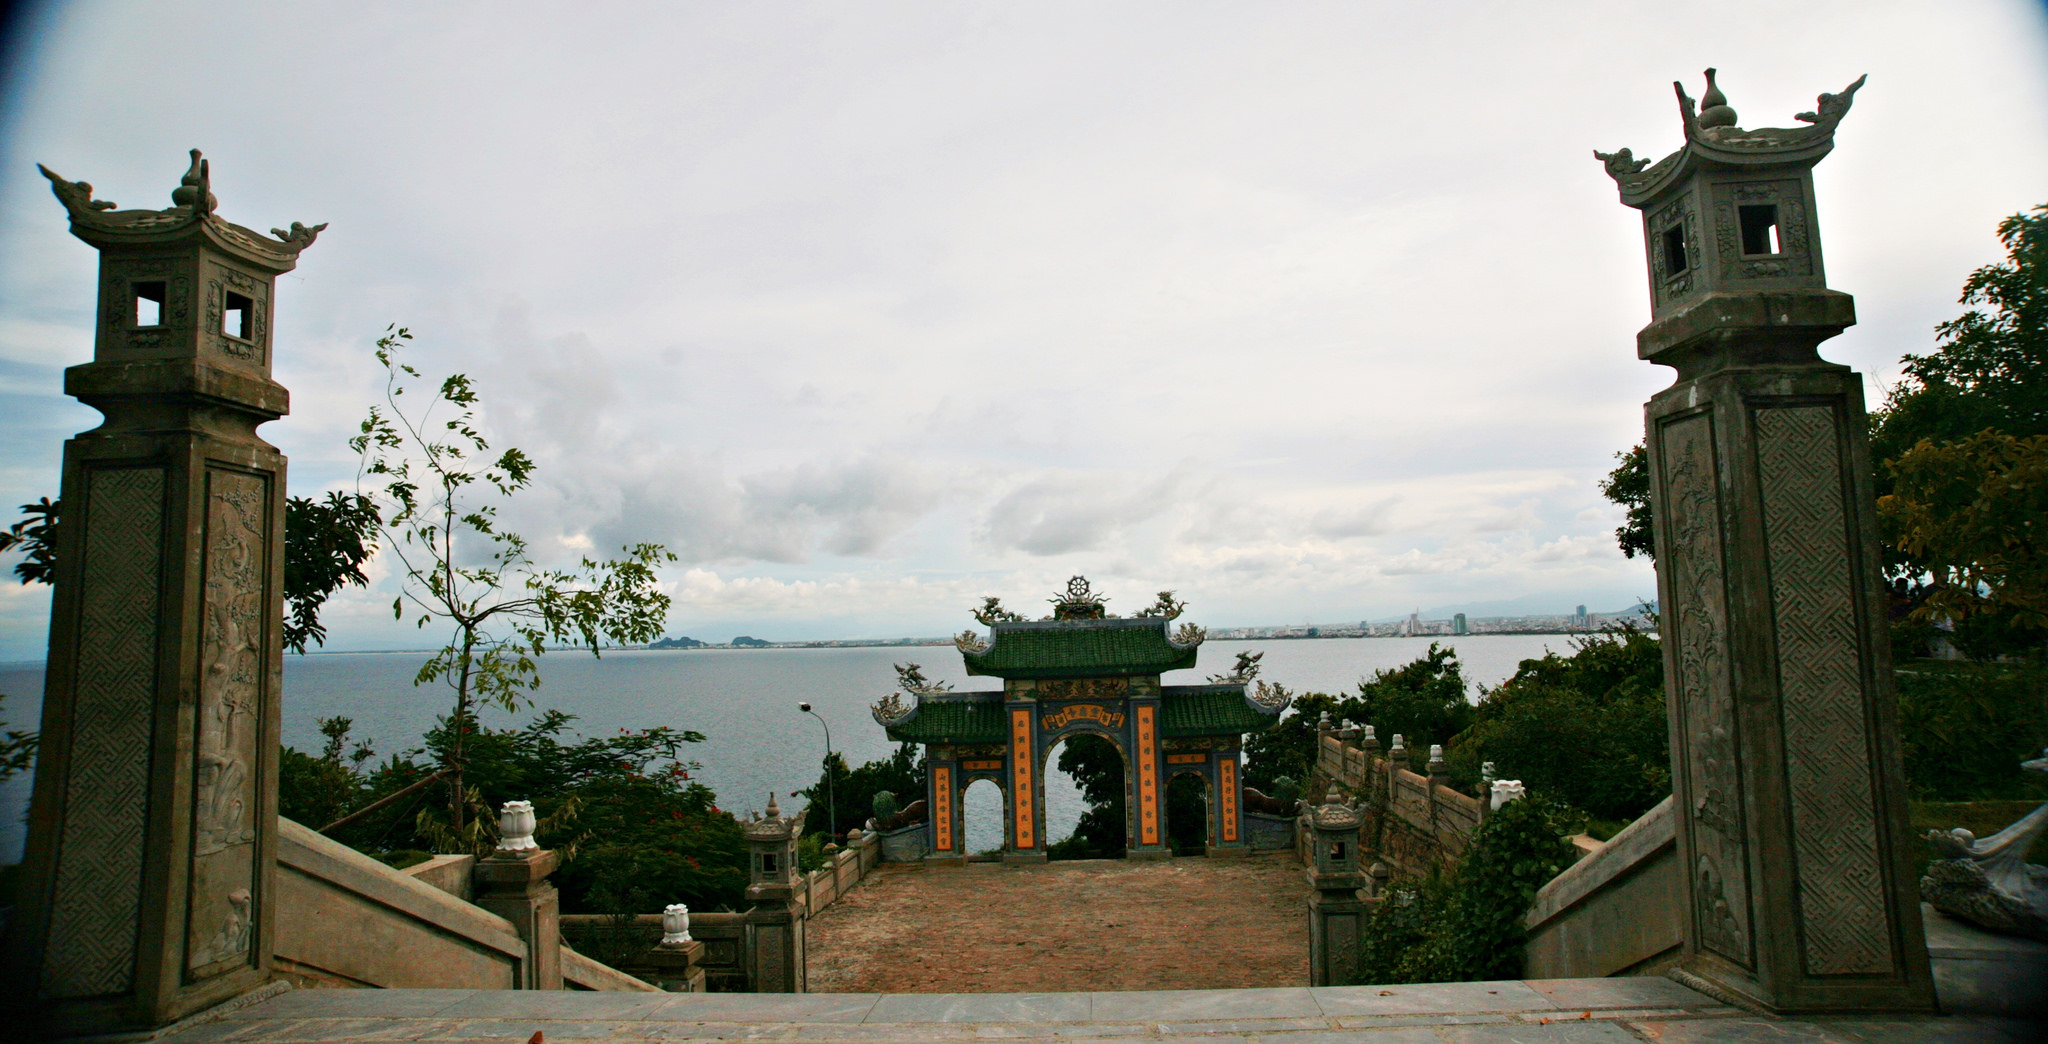 views down to the sea at Linh Ung Pagoda, Vietnam